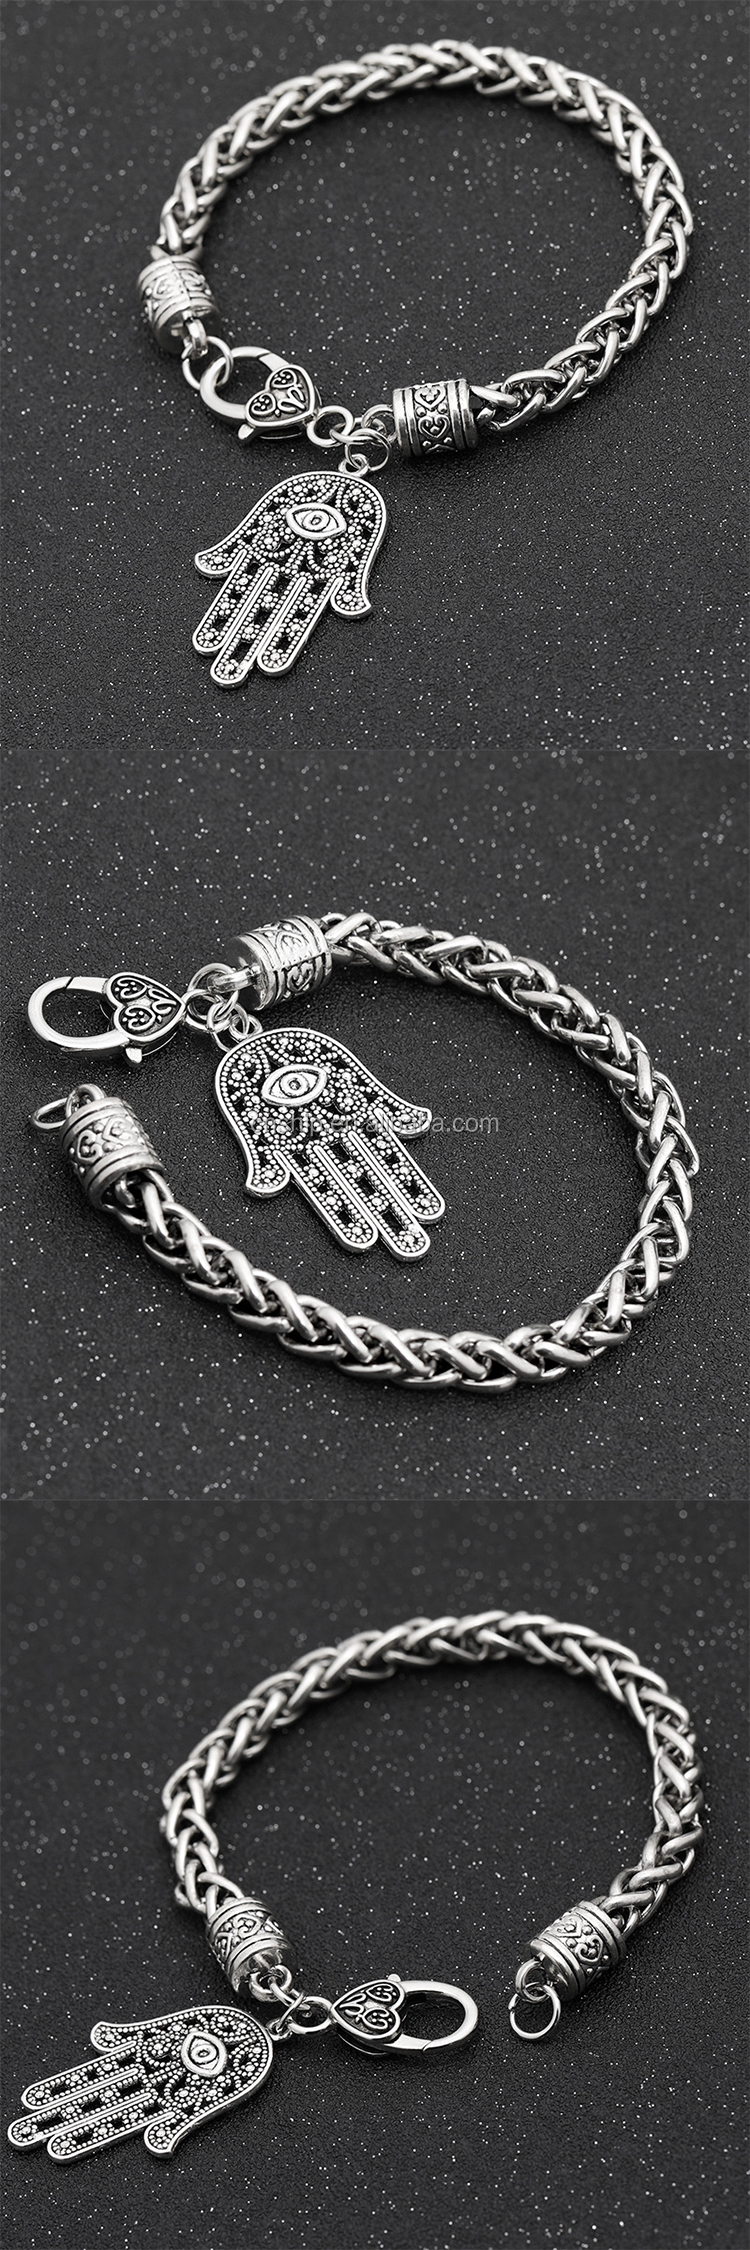 Promotional sliver metal bracelet with pendant